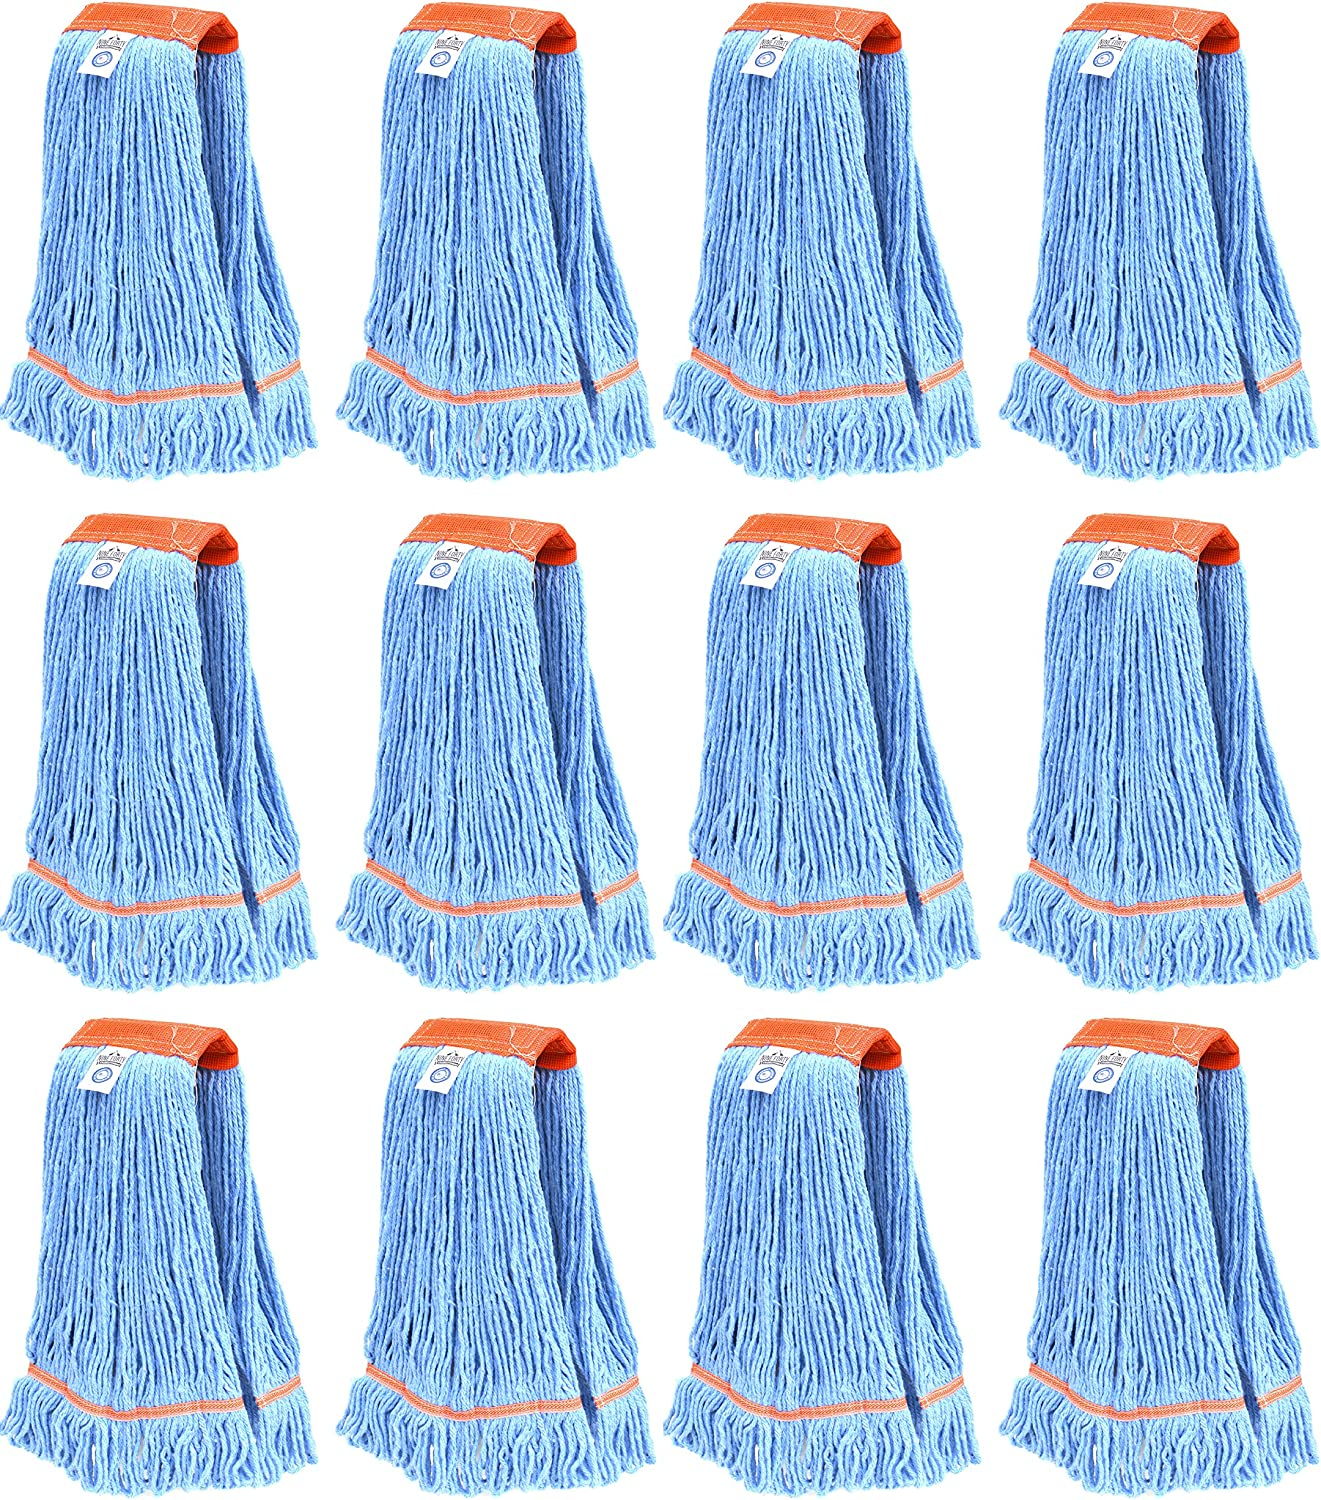 Nine Forty Industrial   Commercial Strength Premium Looped End Floor Cleaning Wet Mop Head Refill   Replacement – Heavy Duty 4 Ply Synthetic Yarn (12 Pack, Large)